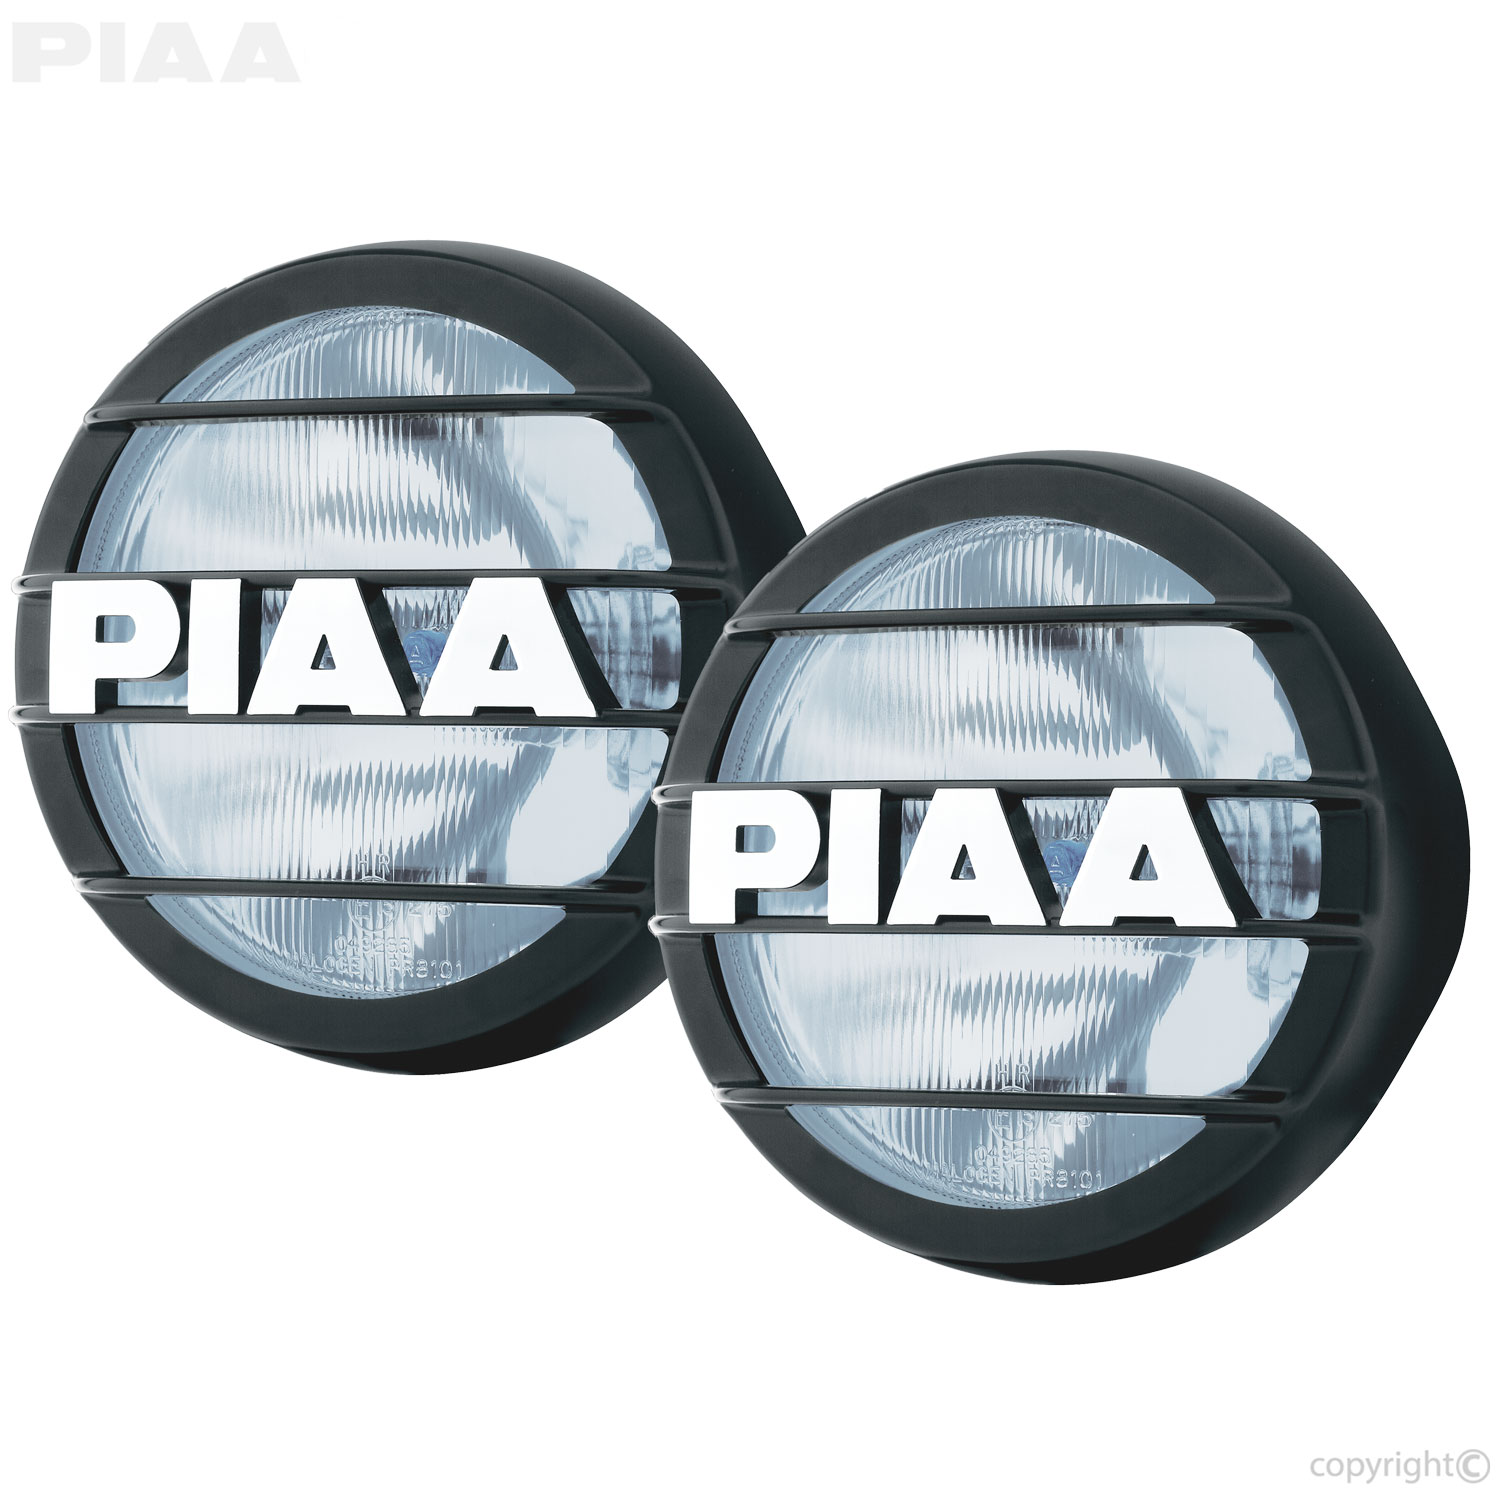 Piaa 580 Wiring Diagram Just Another Blog Fog Lights Driving Xtreme White Plus Halogen Lamp Kit 05862 Rh Com 510 Long Tractor Diagrams